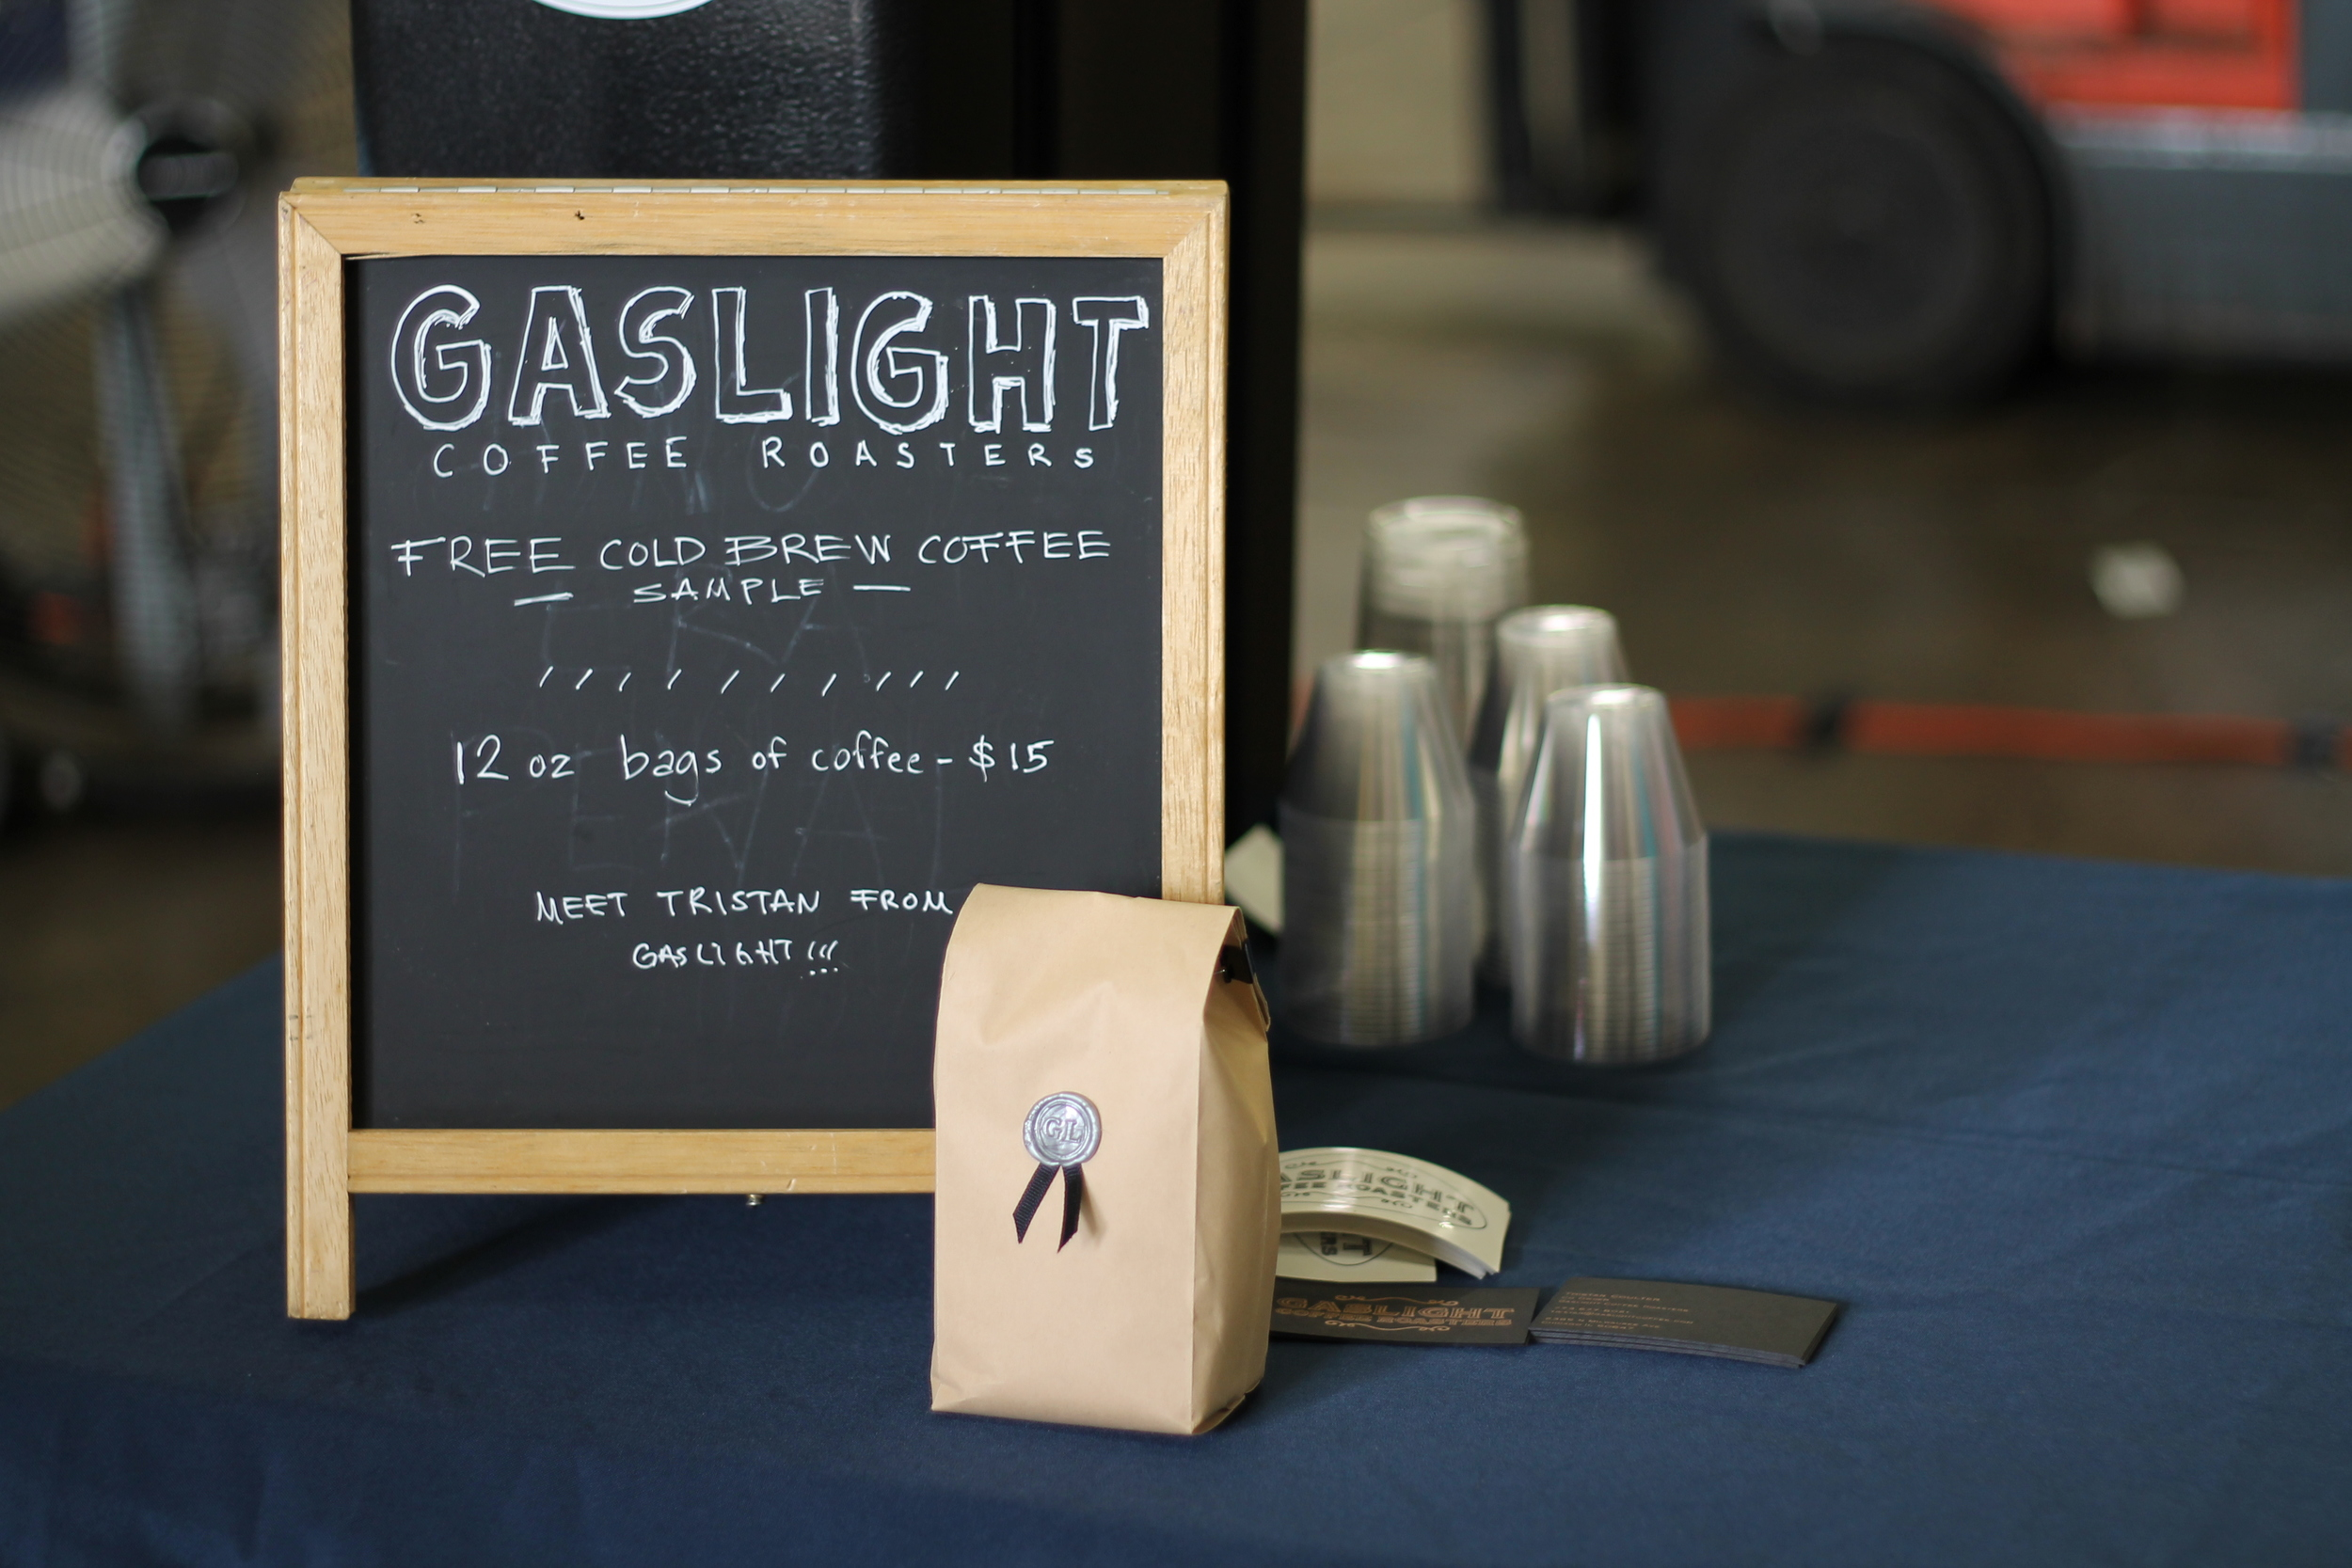 Cold brew samples courtesy Gaslight Coffee Roasters, who also custom roasted the coffee used in Yodo.